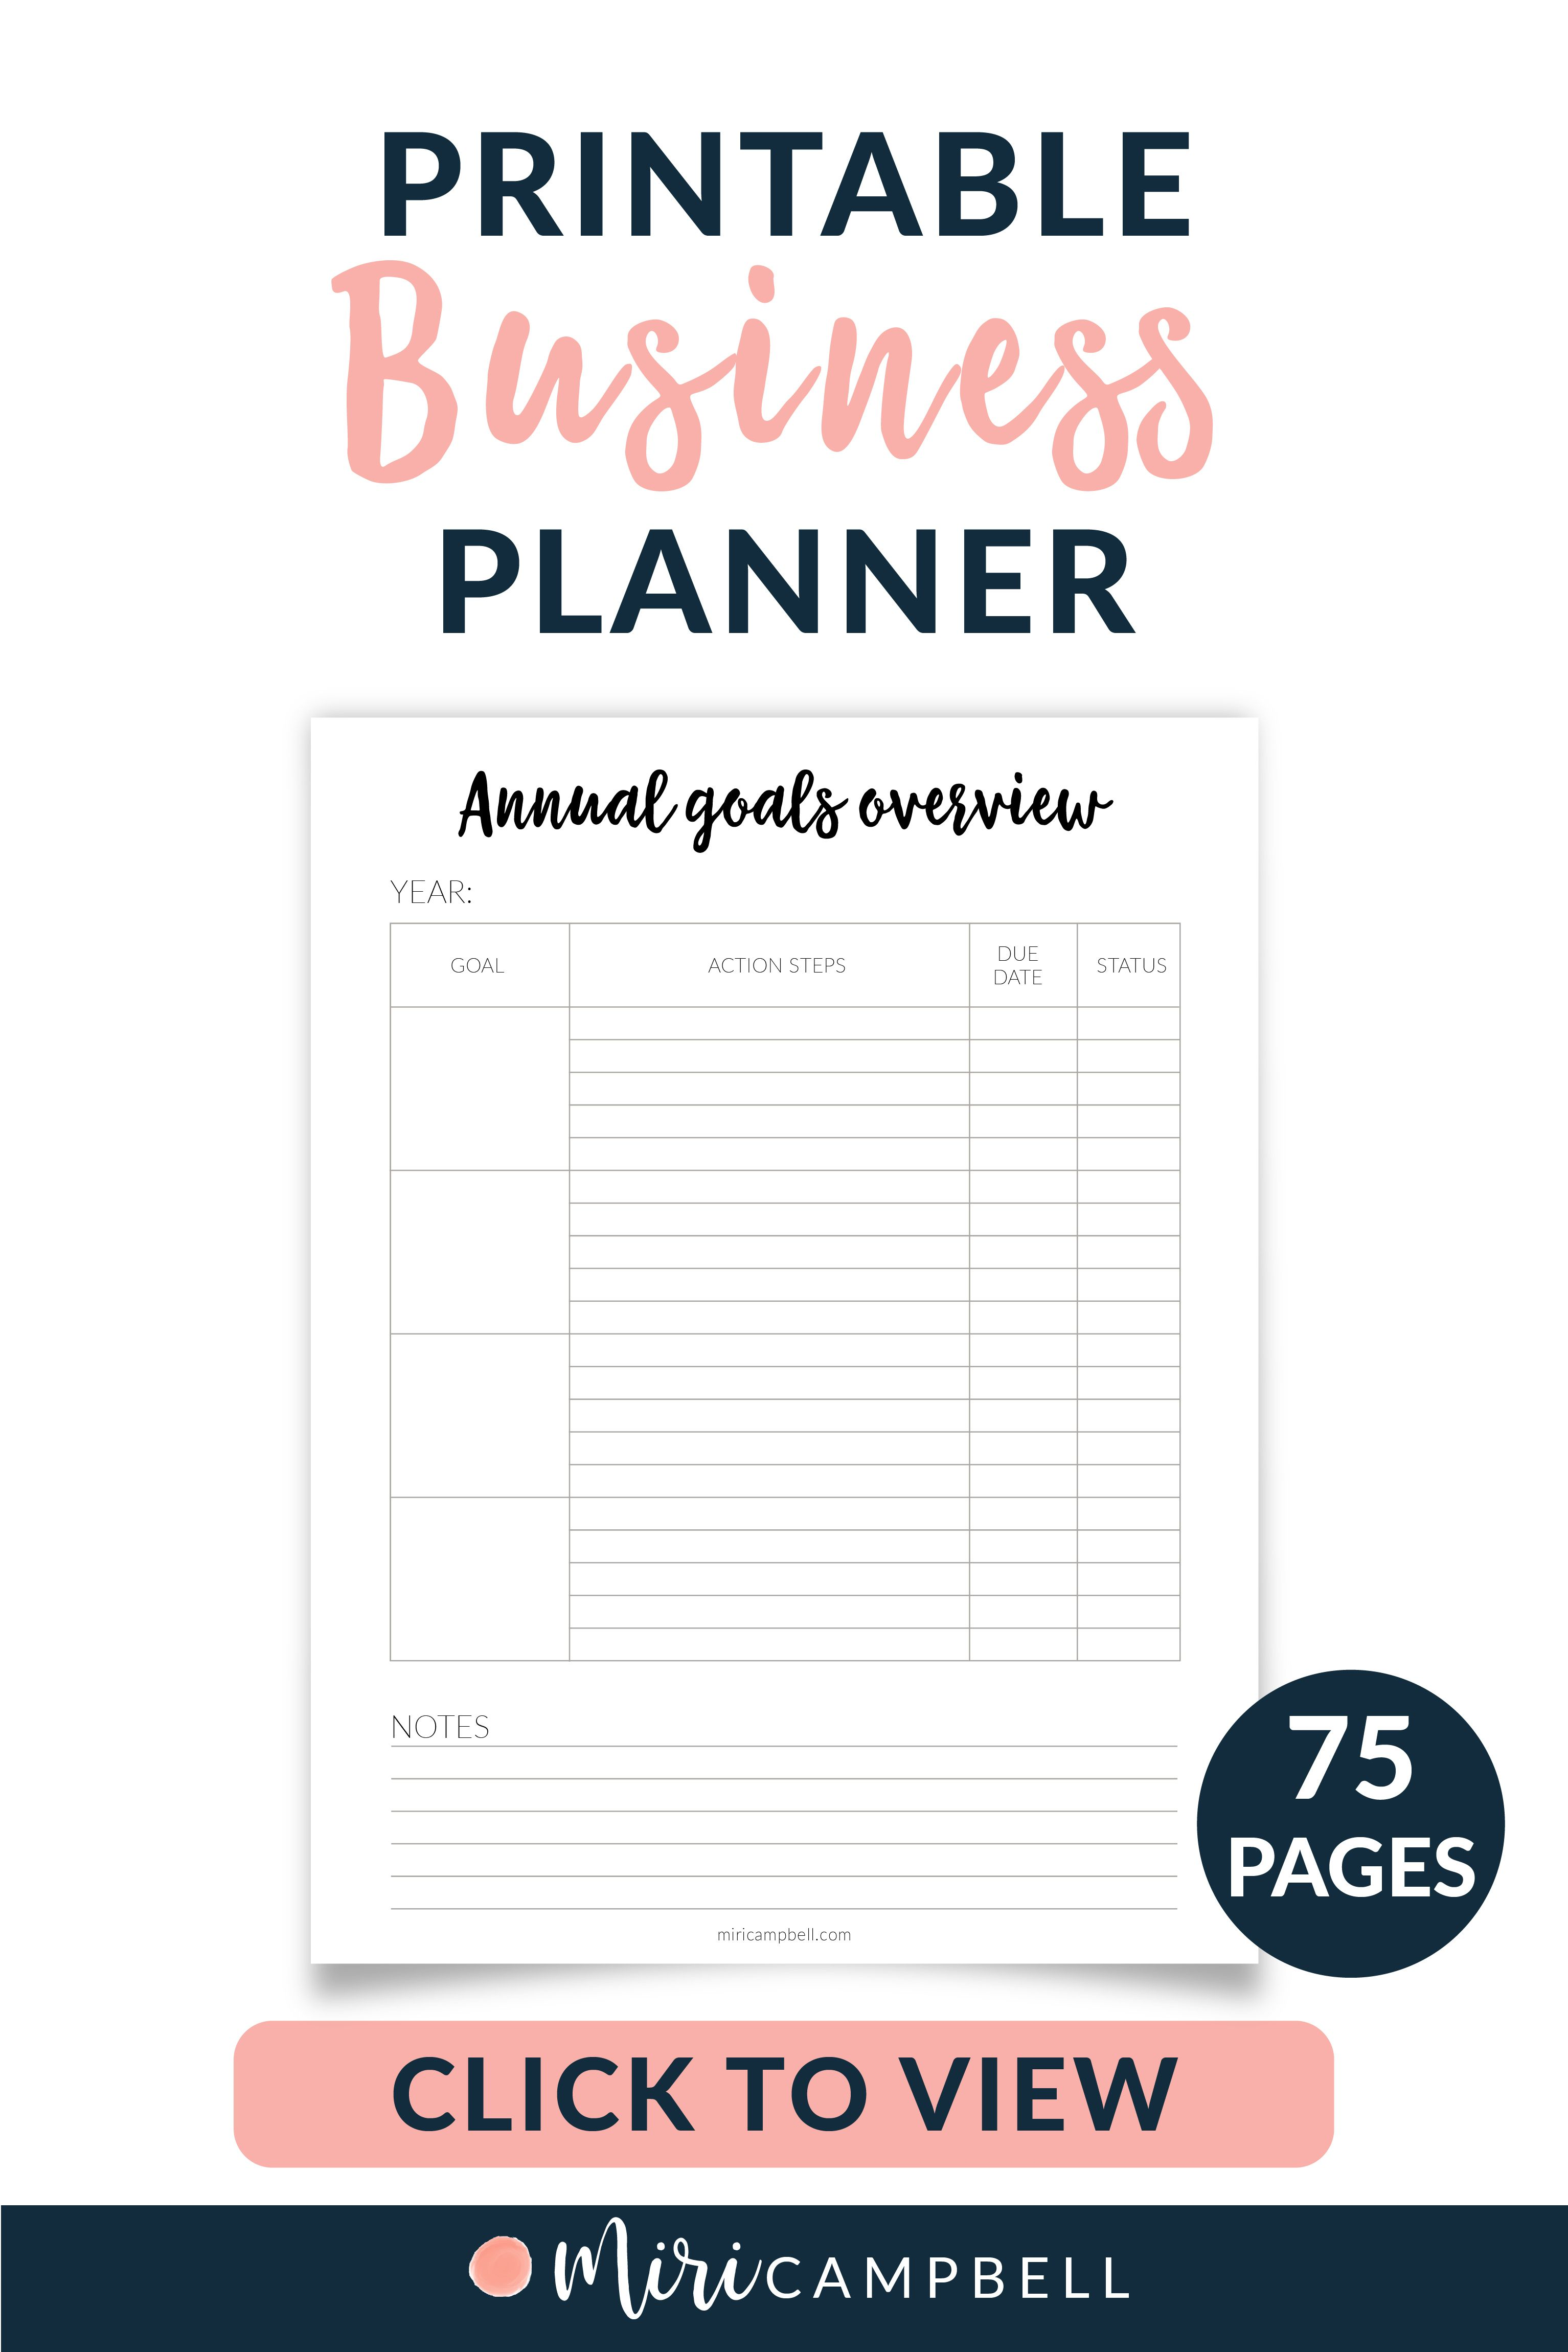 Printable Business Planner Small Business Planner